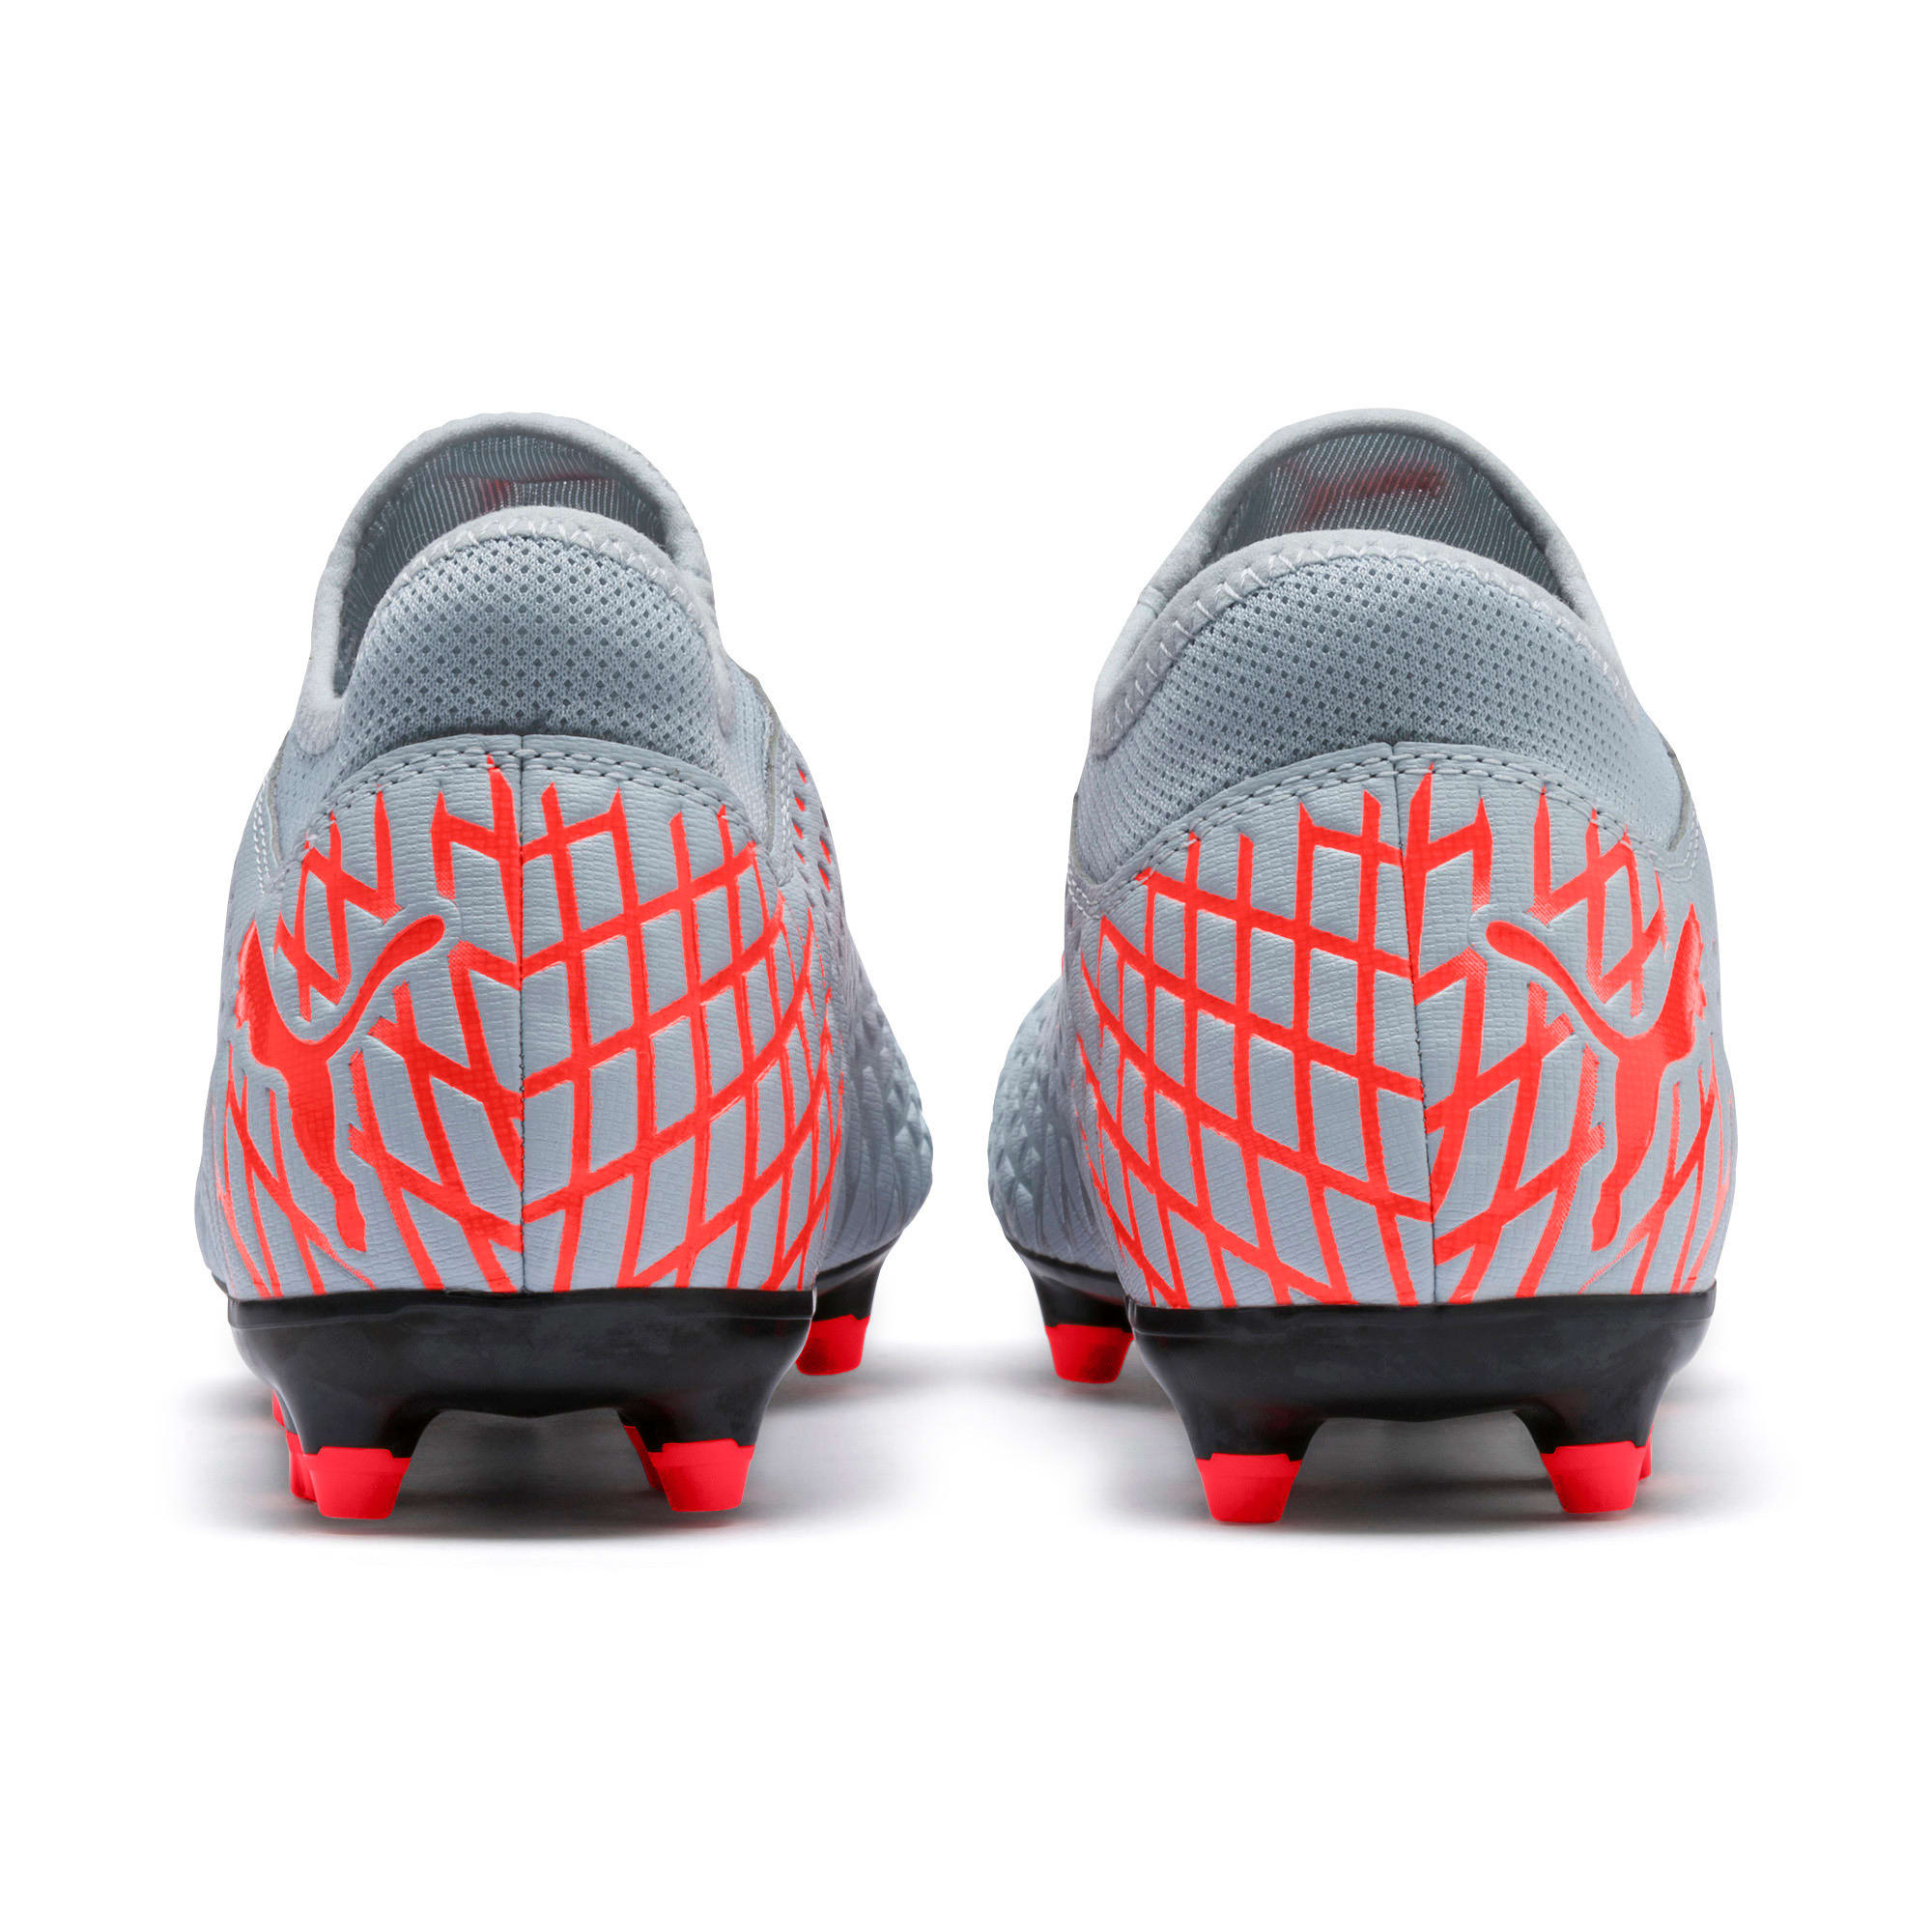 Thumbnail 5 of FUTURE 4.4 FG/AG Men's Football Boots, Glacial Blue-Nrgy Red, medium-IND